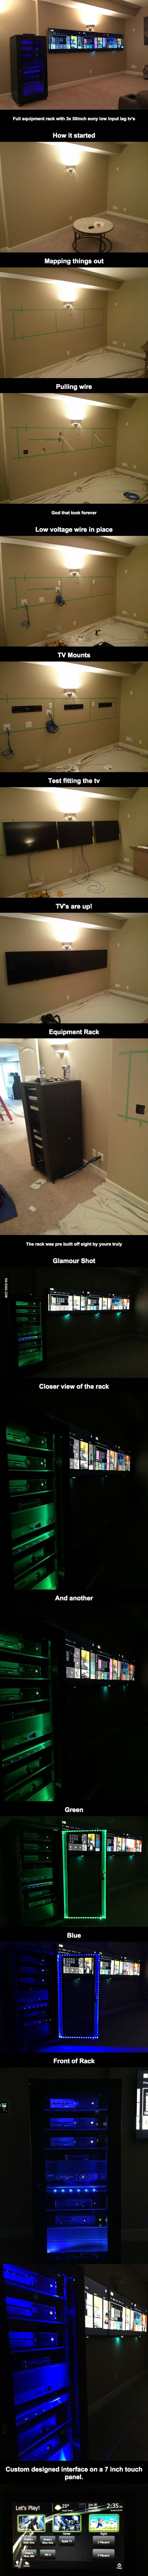 Gaming Room - Progressive Home Automation. - www.facebook.com/groups/humor9